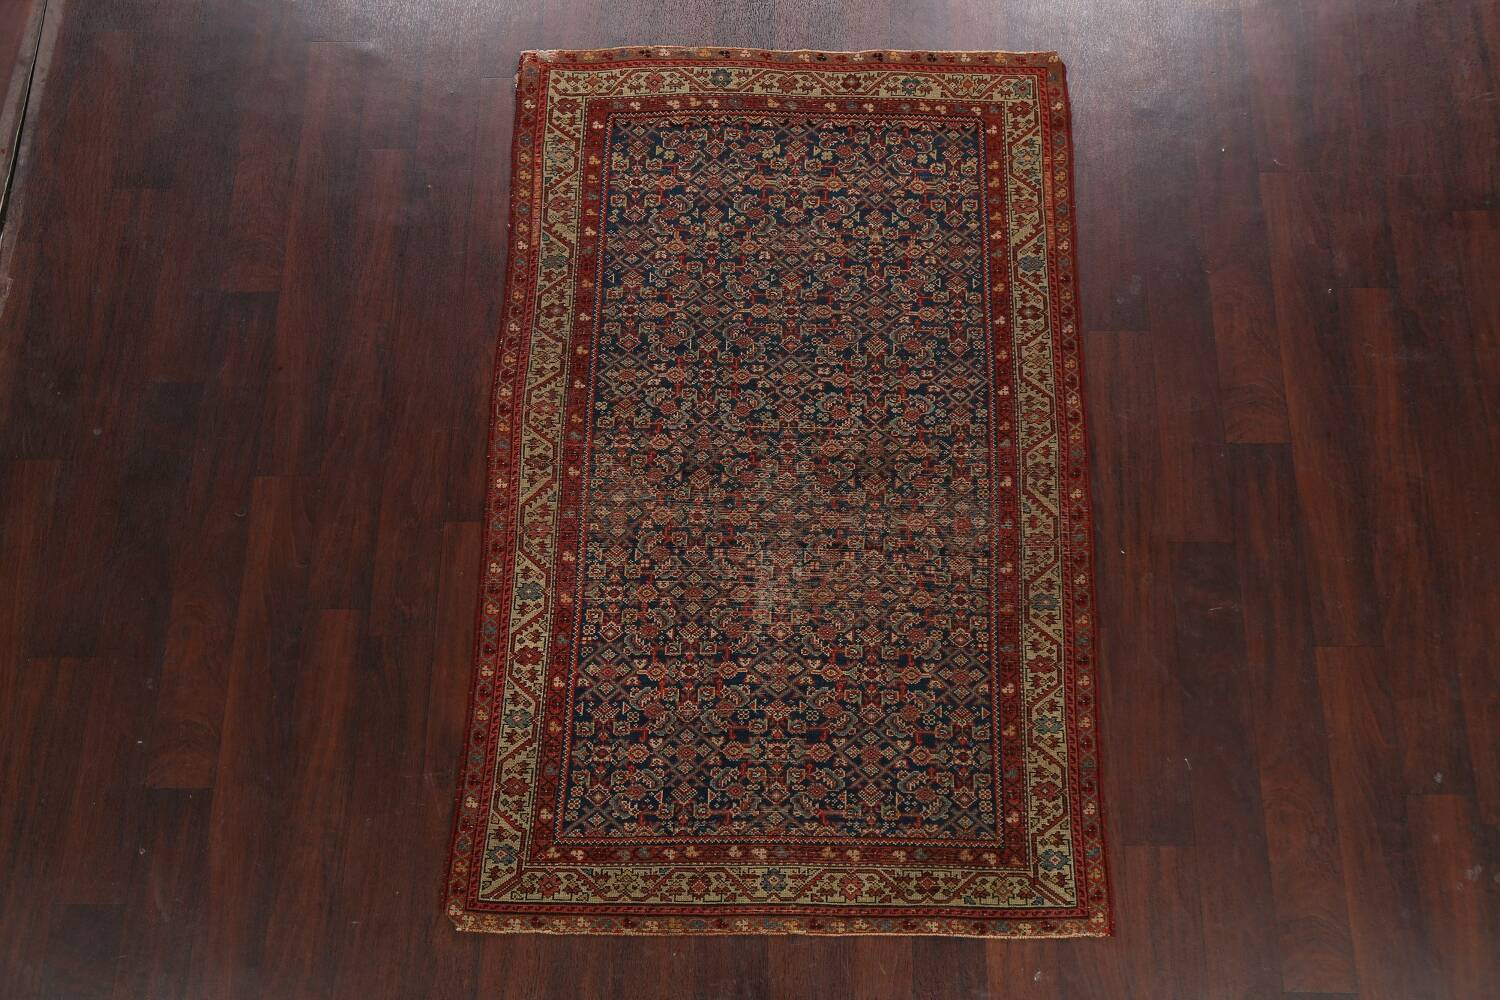 Pre-1900 Antique All-Over Malayer Persian Area Rug 4x6 image 2